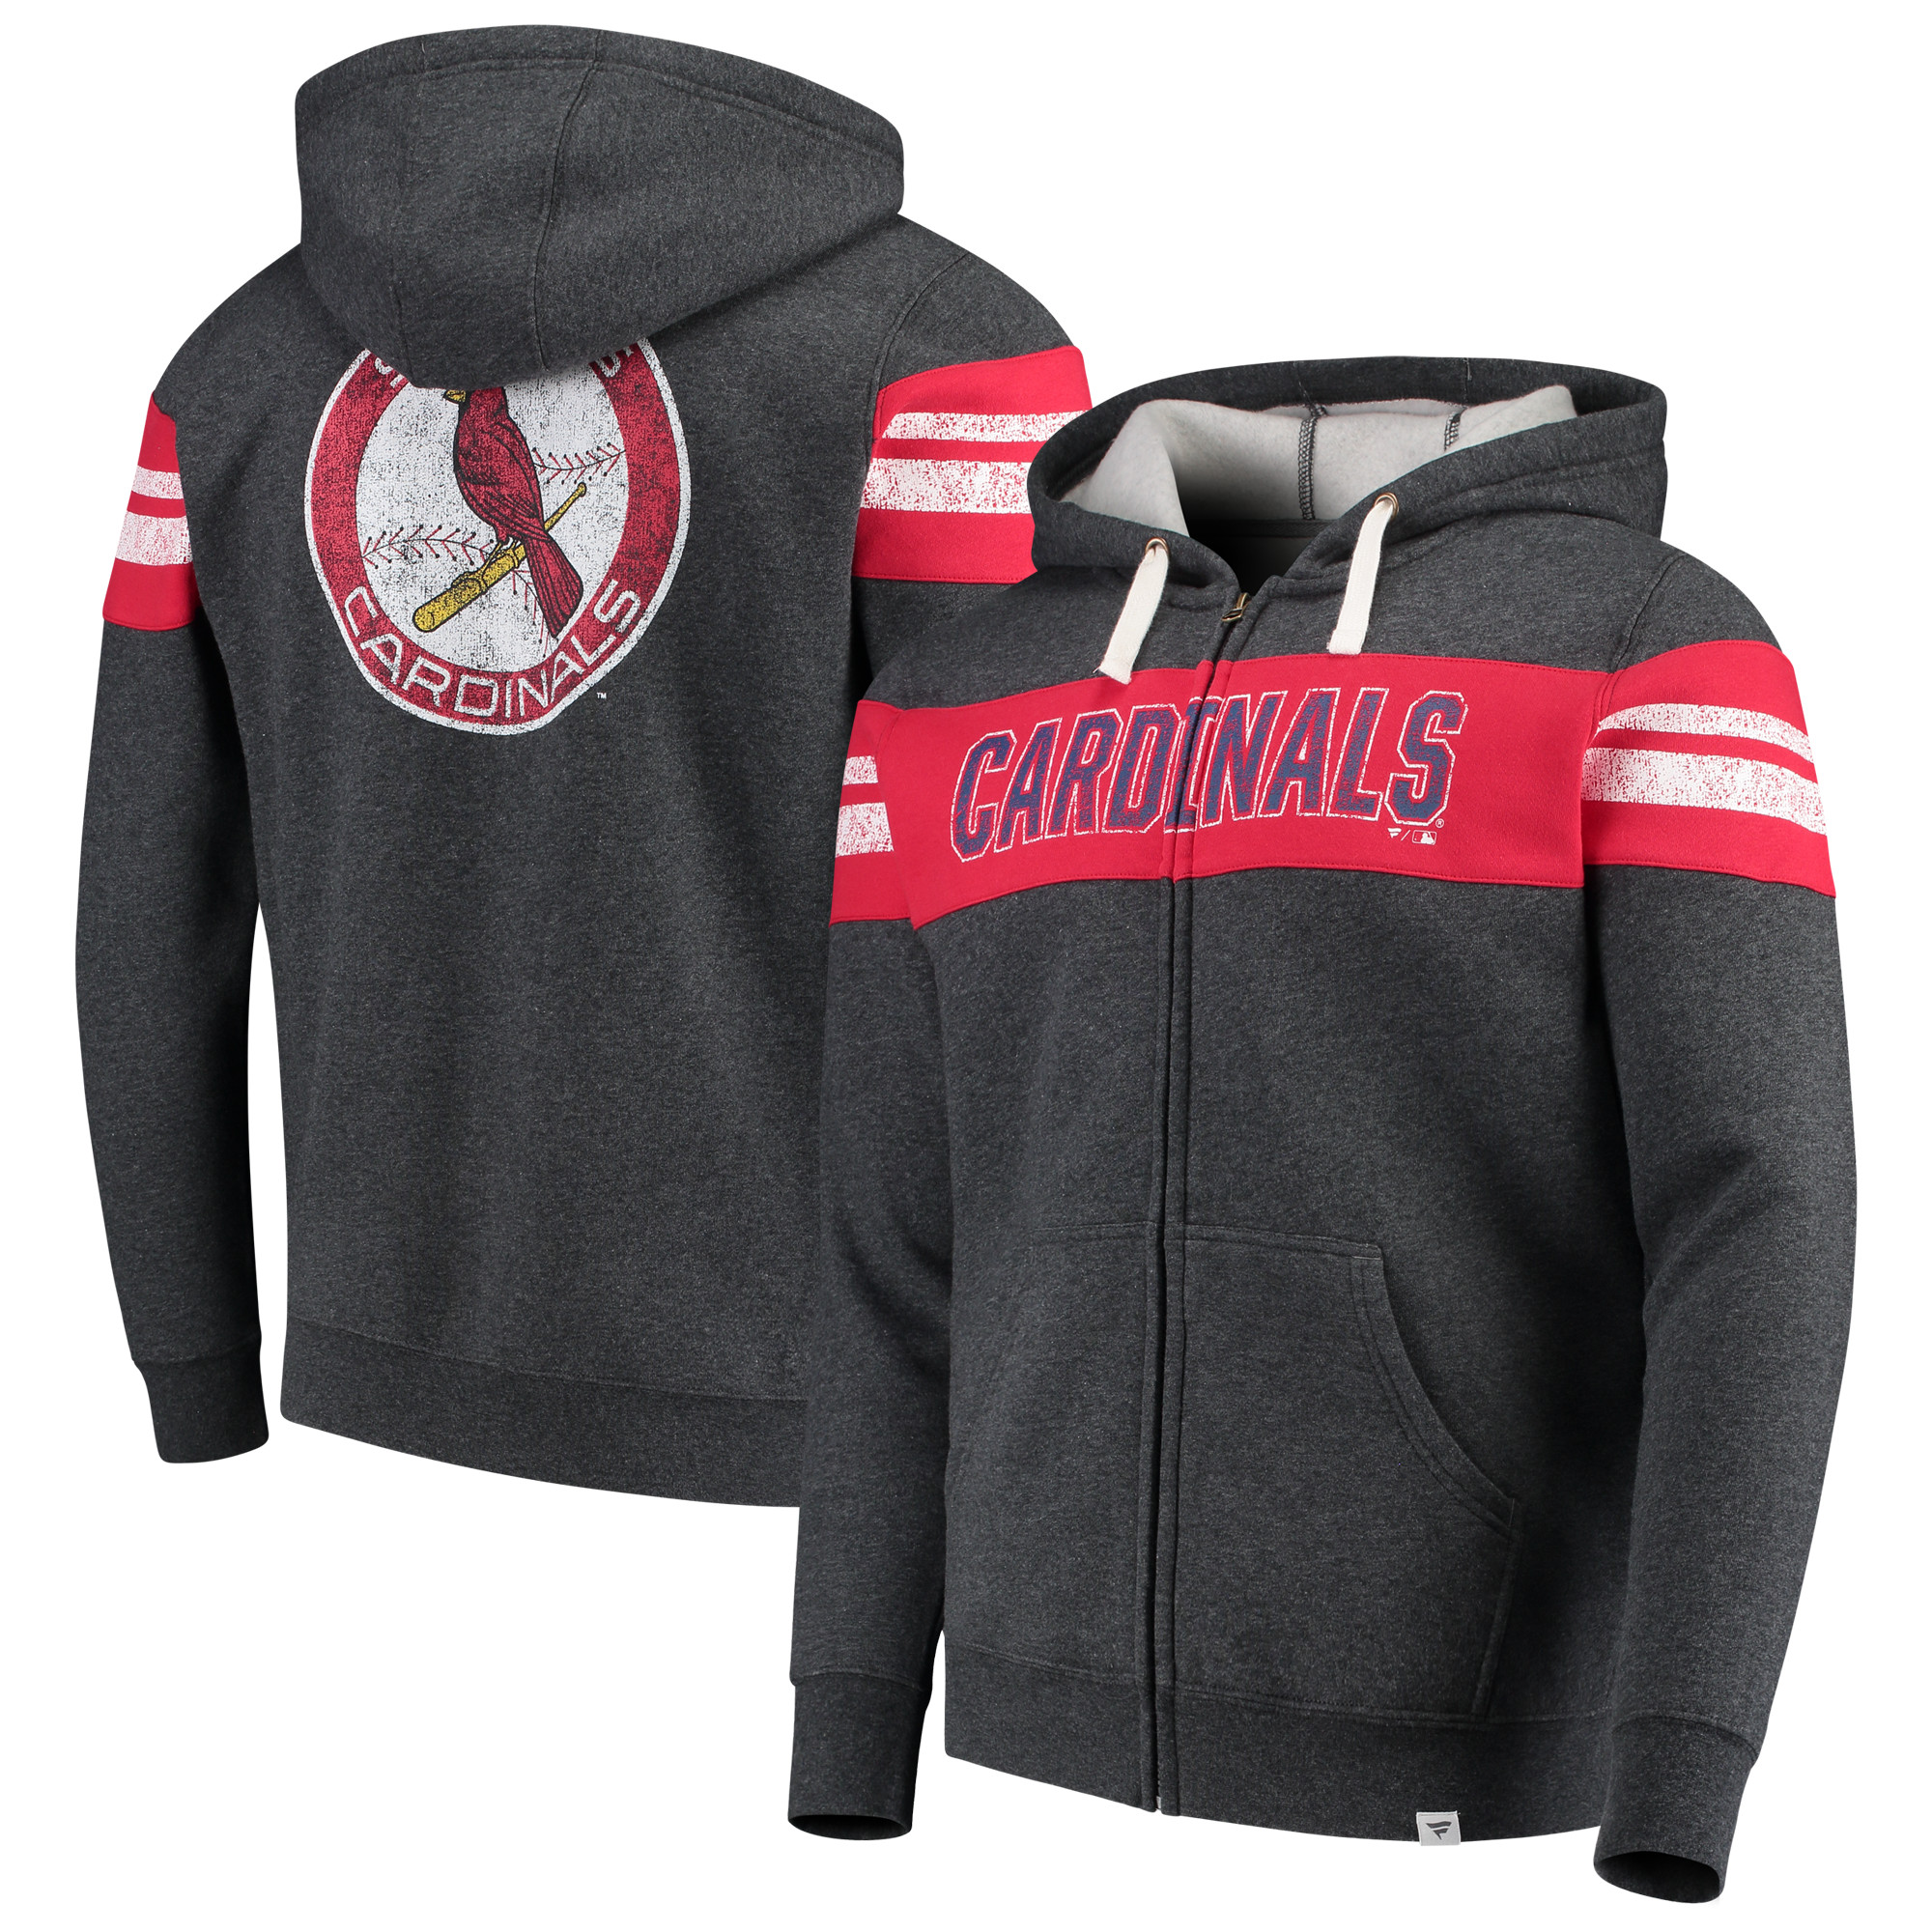 St. Louis Cardinals Fanatics Branded True Classics Full-Zip Hoodie - Heathered Charcoal